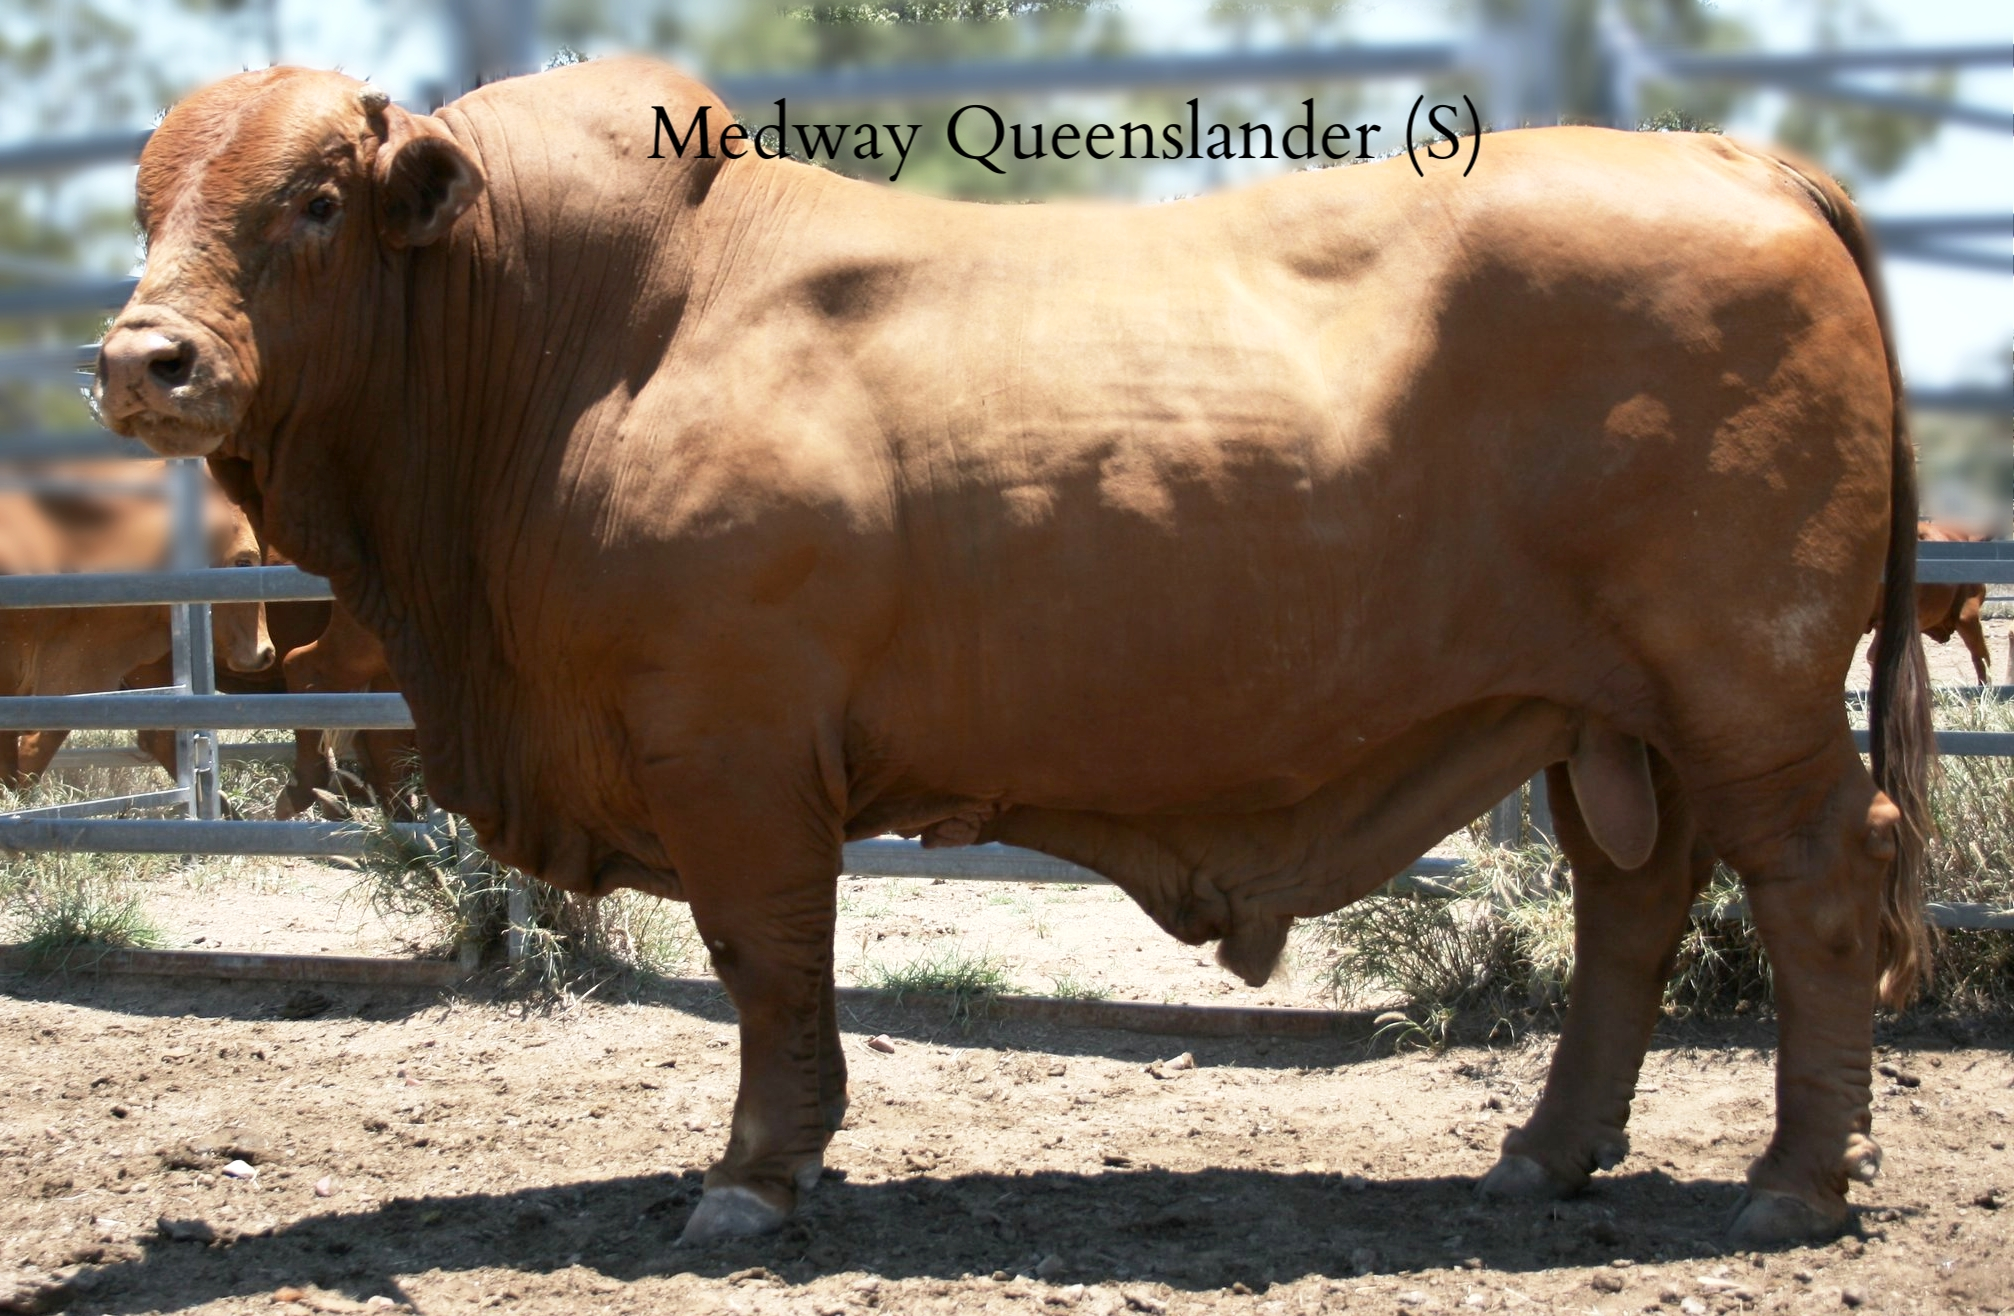 Medway Queenslander   is a home bred retained sire, who has been beyond a herd improver. The Donaldson family can not get enough of his genetics, retaining six of his sons over the past five years to breed on. The easy-doing ability, weight for age, heavy framed bone, natural muscling and temperament are just a few of the compositional values Medway appreciates about this sire.